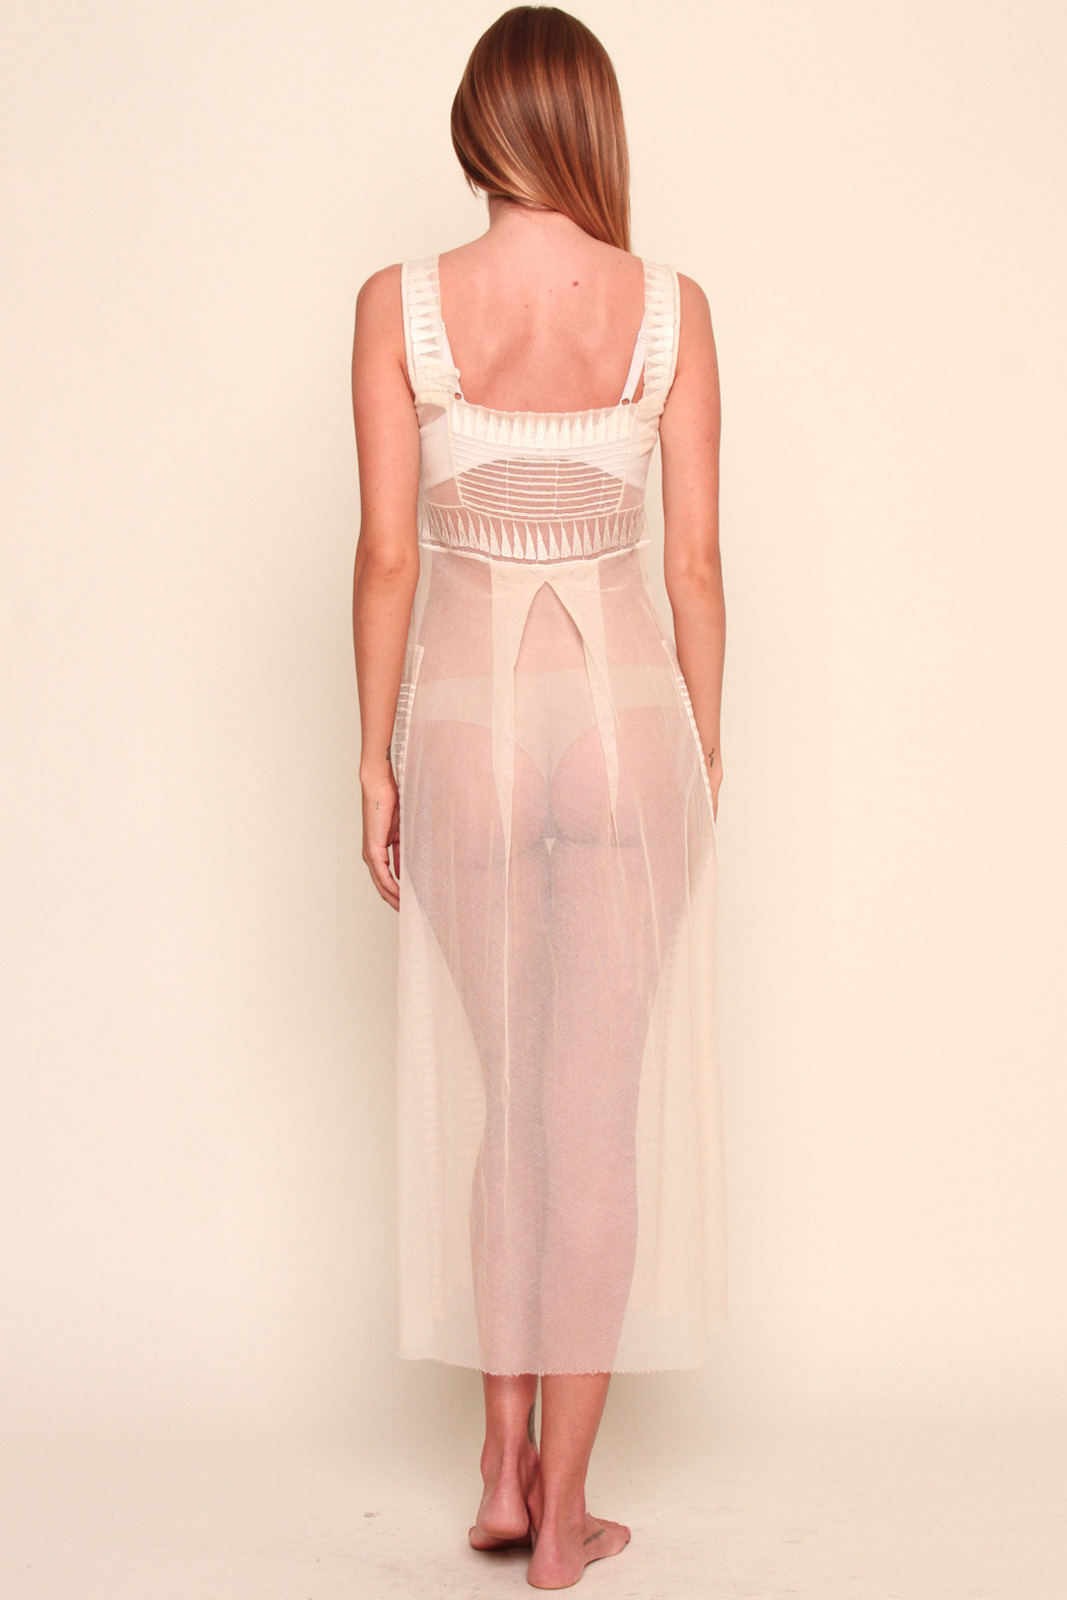 LA Boudoir Miami 1920s Sheer Dress From Miami Shoptiques